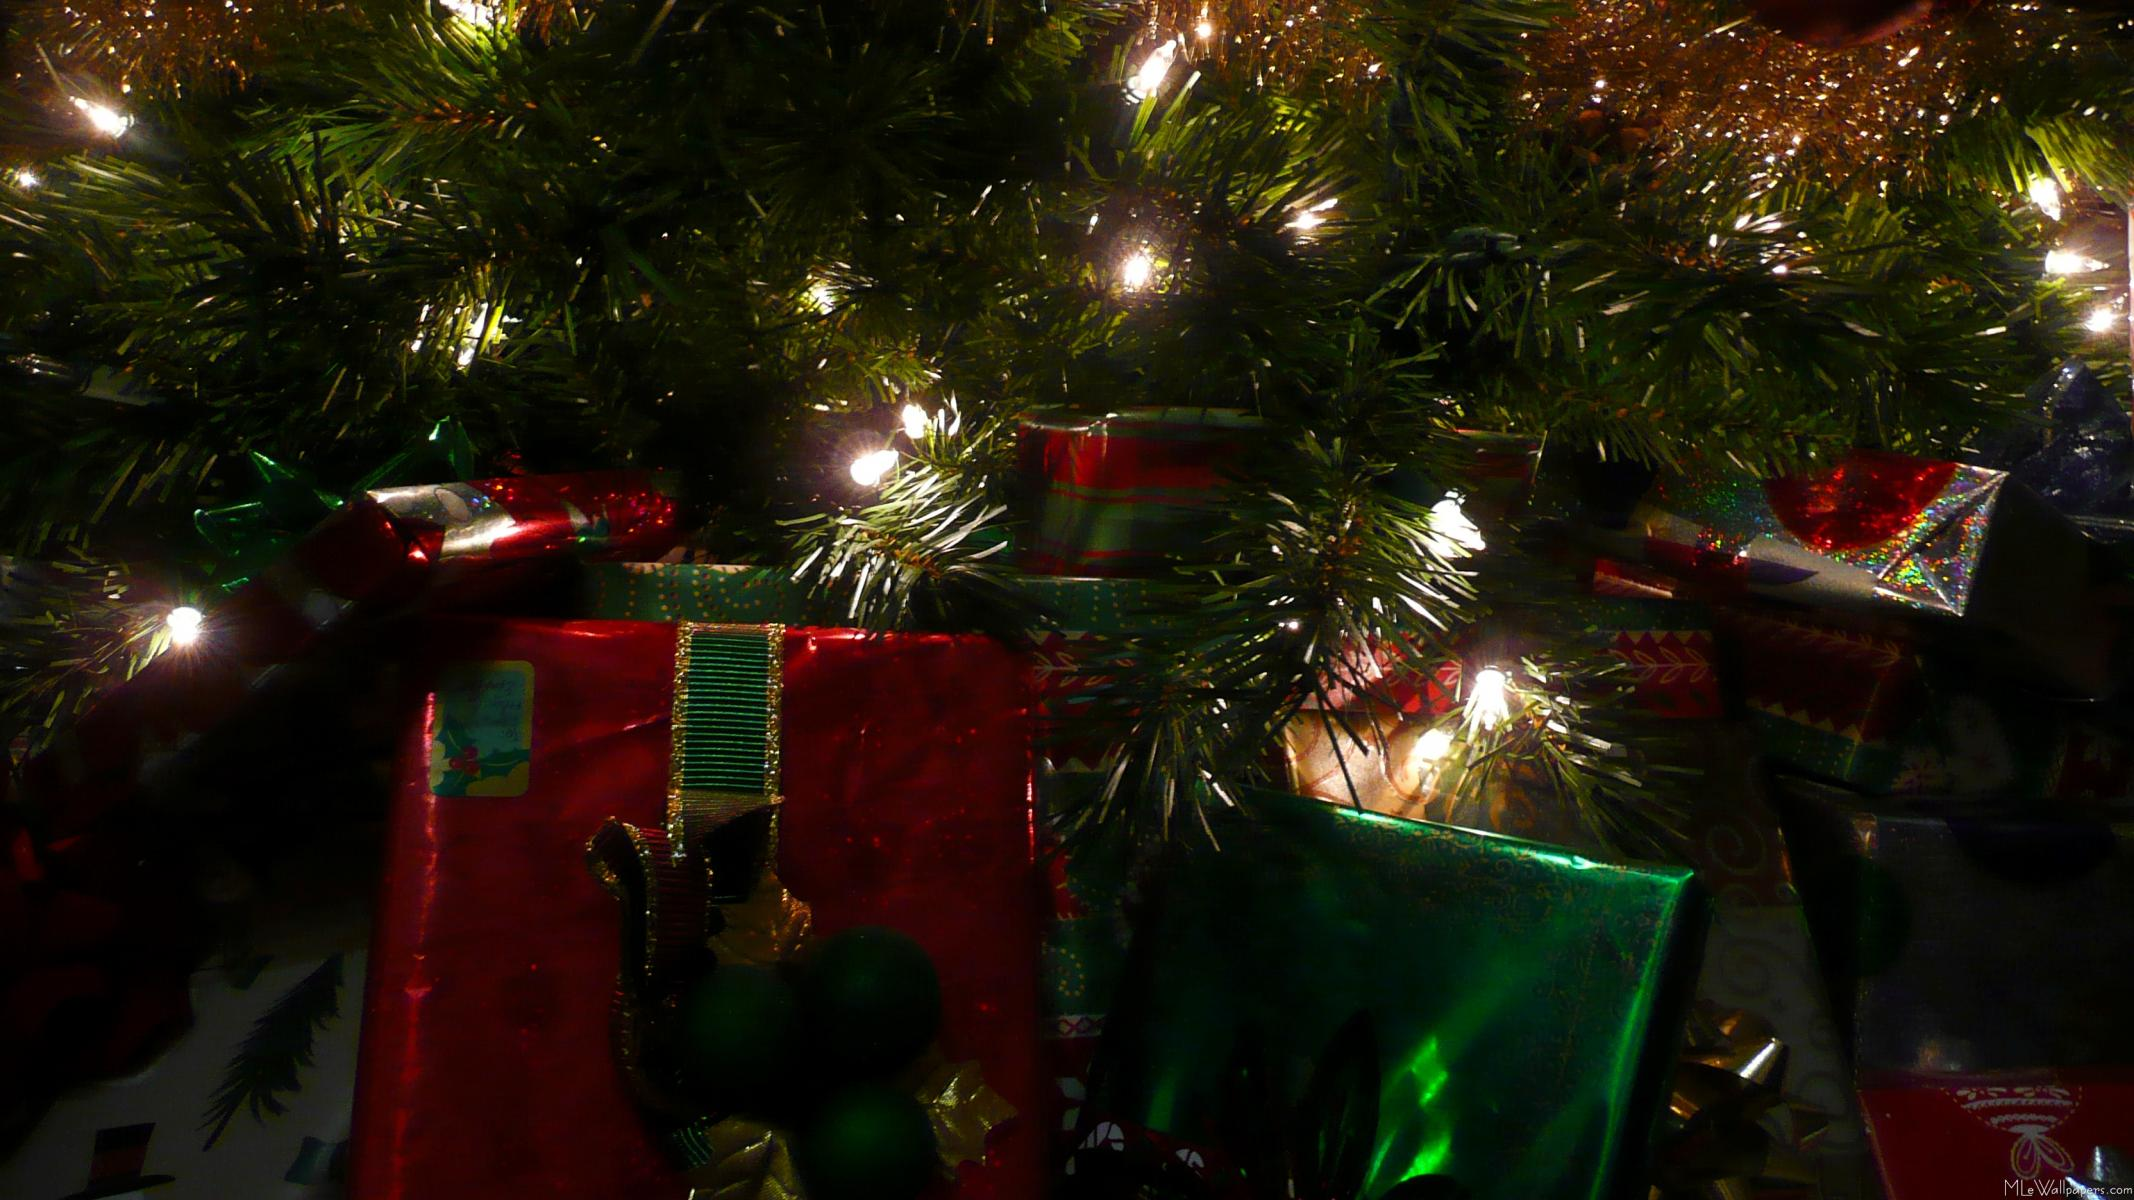 christmas tree with presents - photo #30